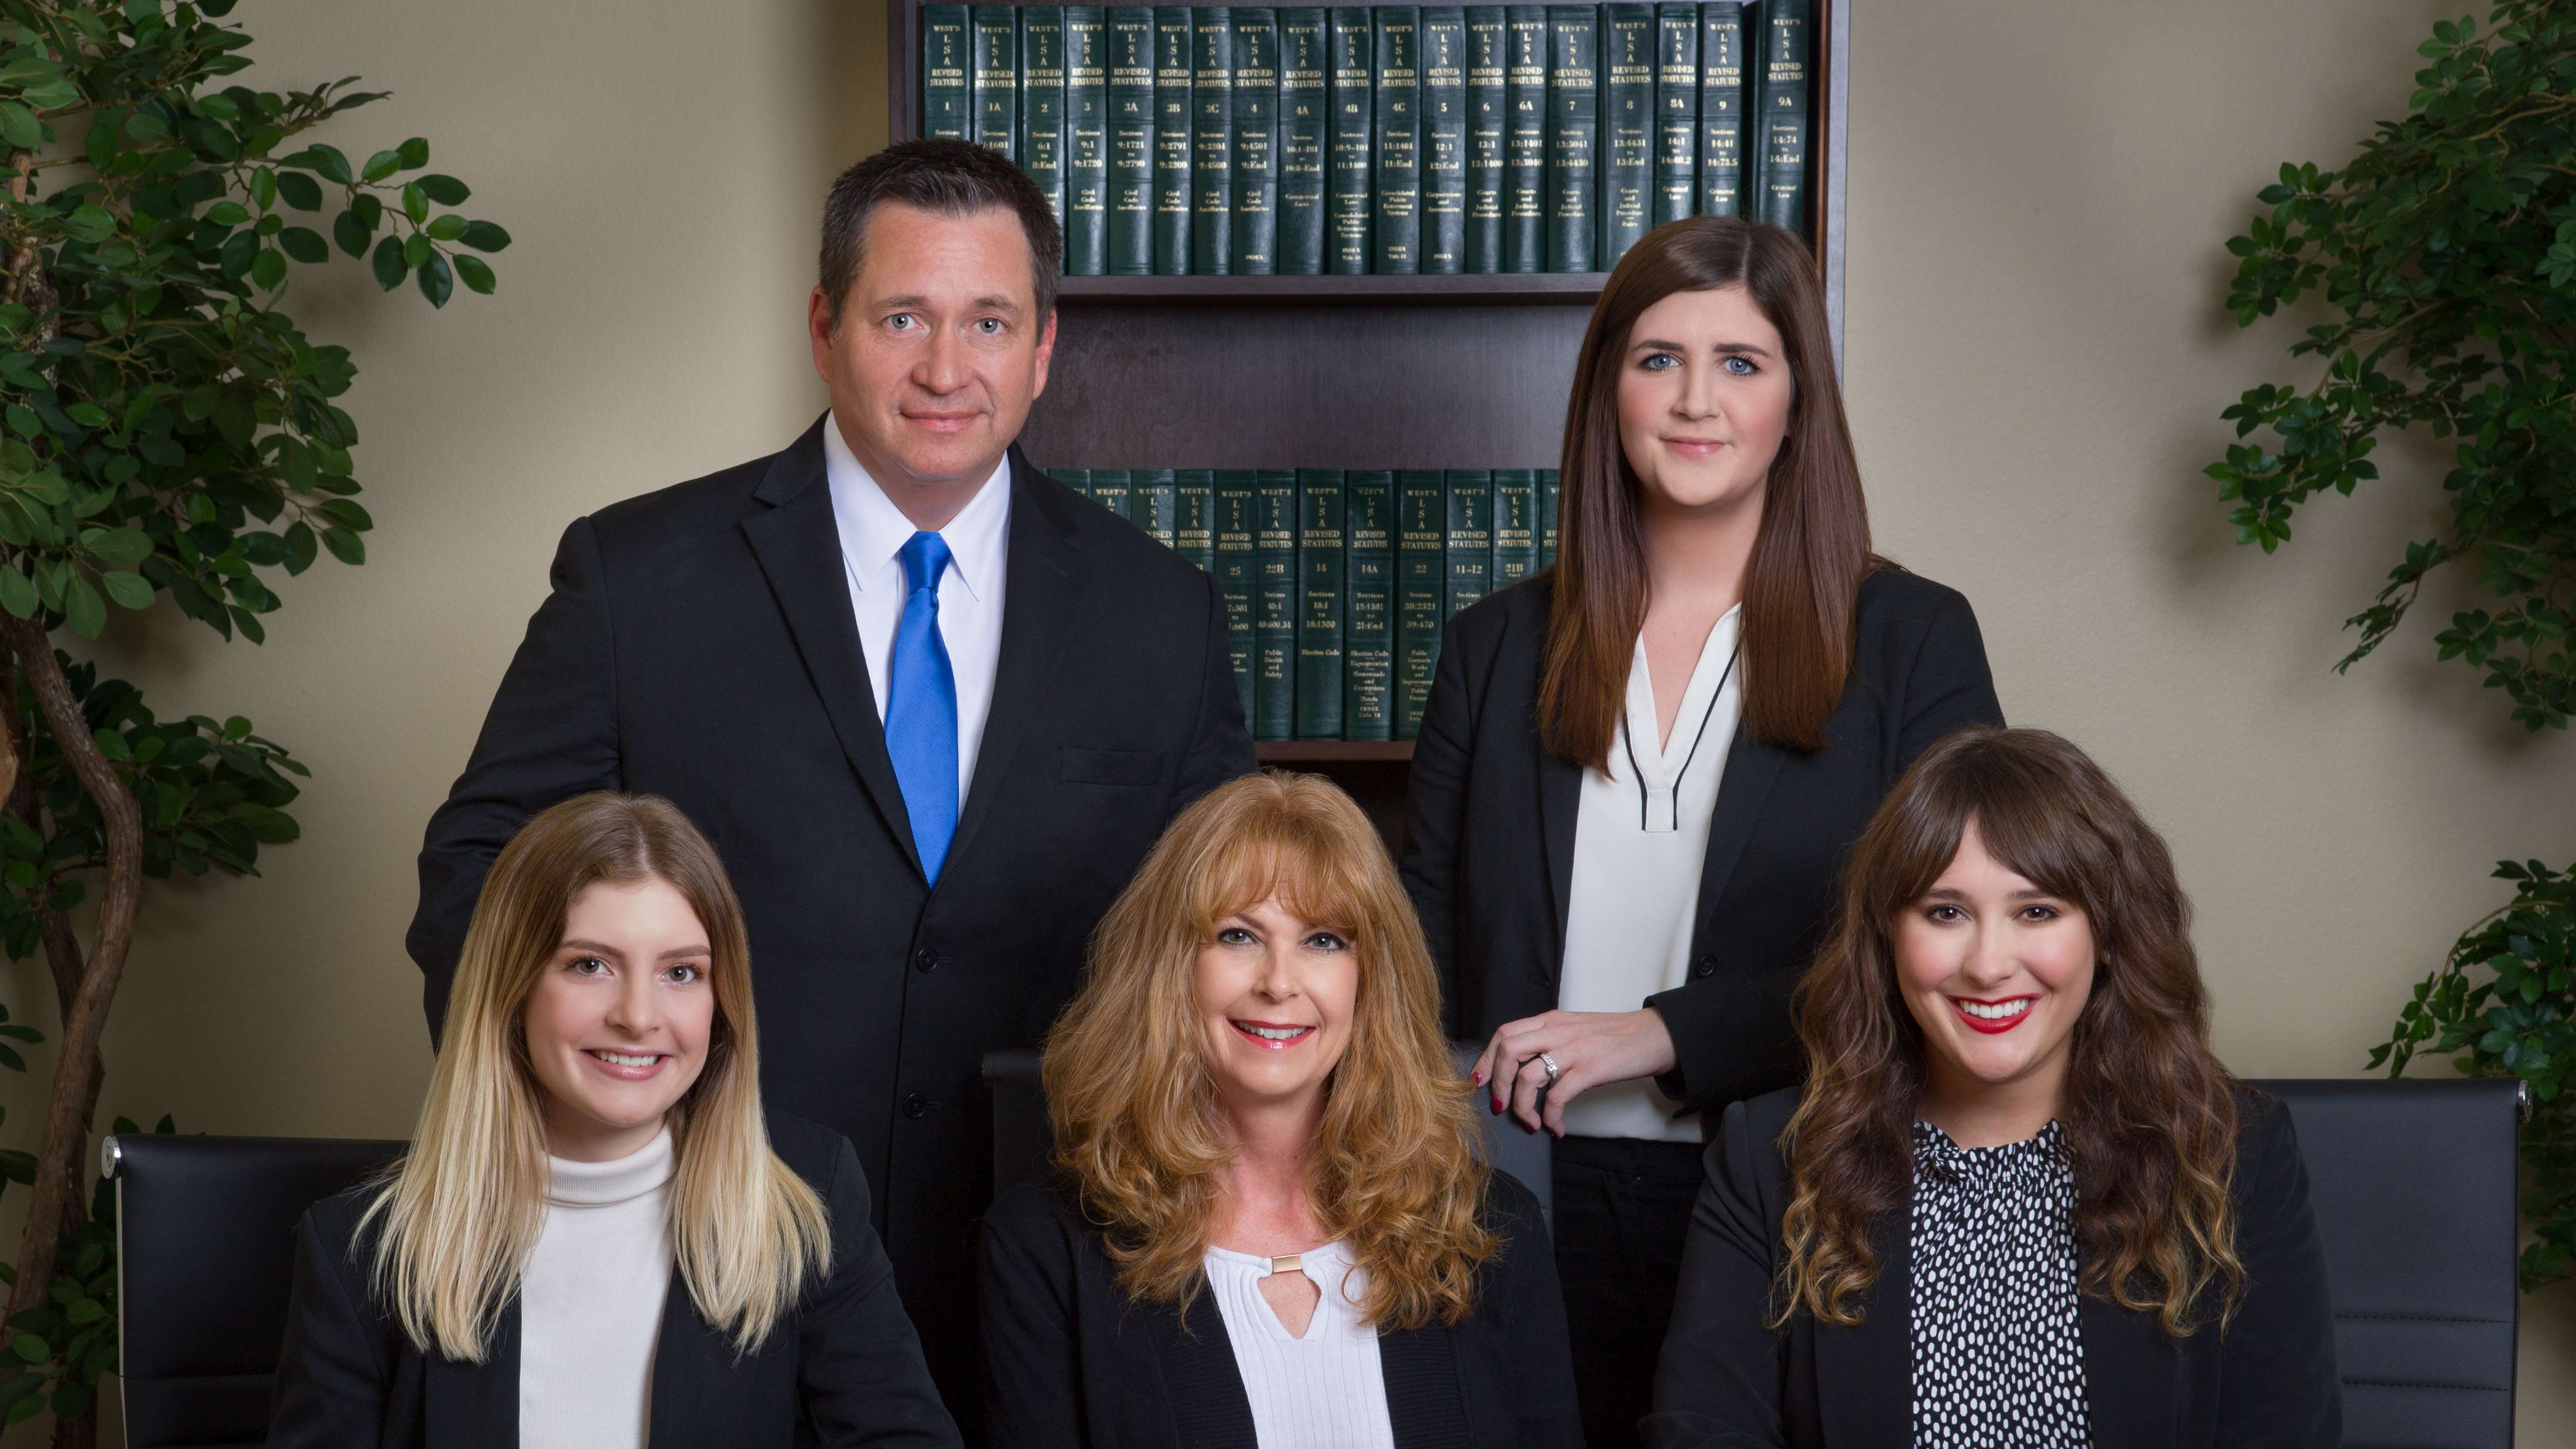 Criminal Defense, Family & Personal Injury Lawyer in Shreveport, LA